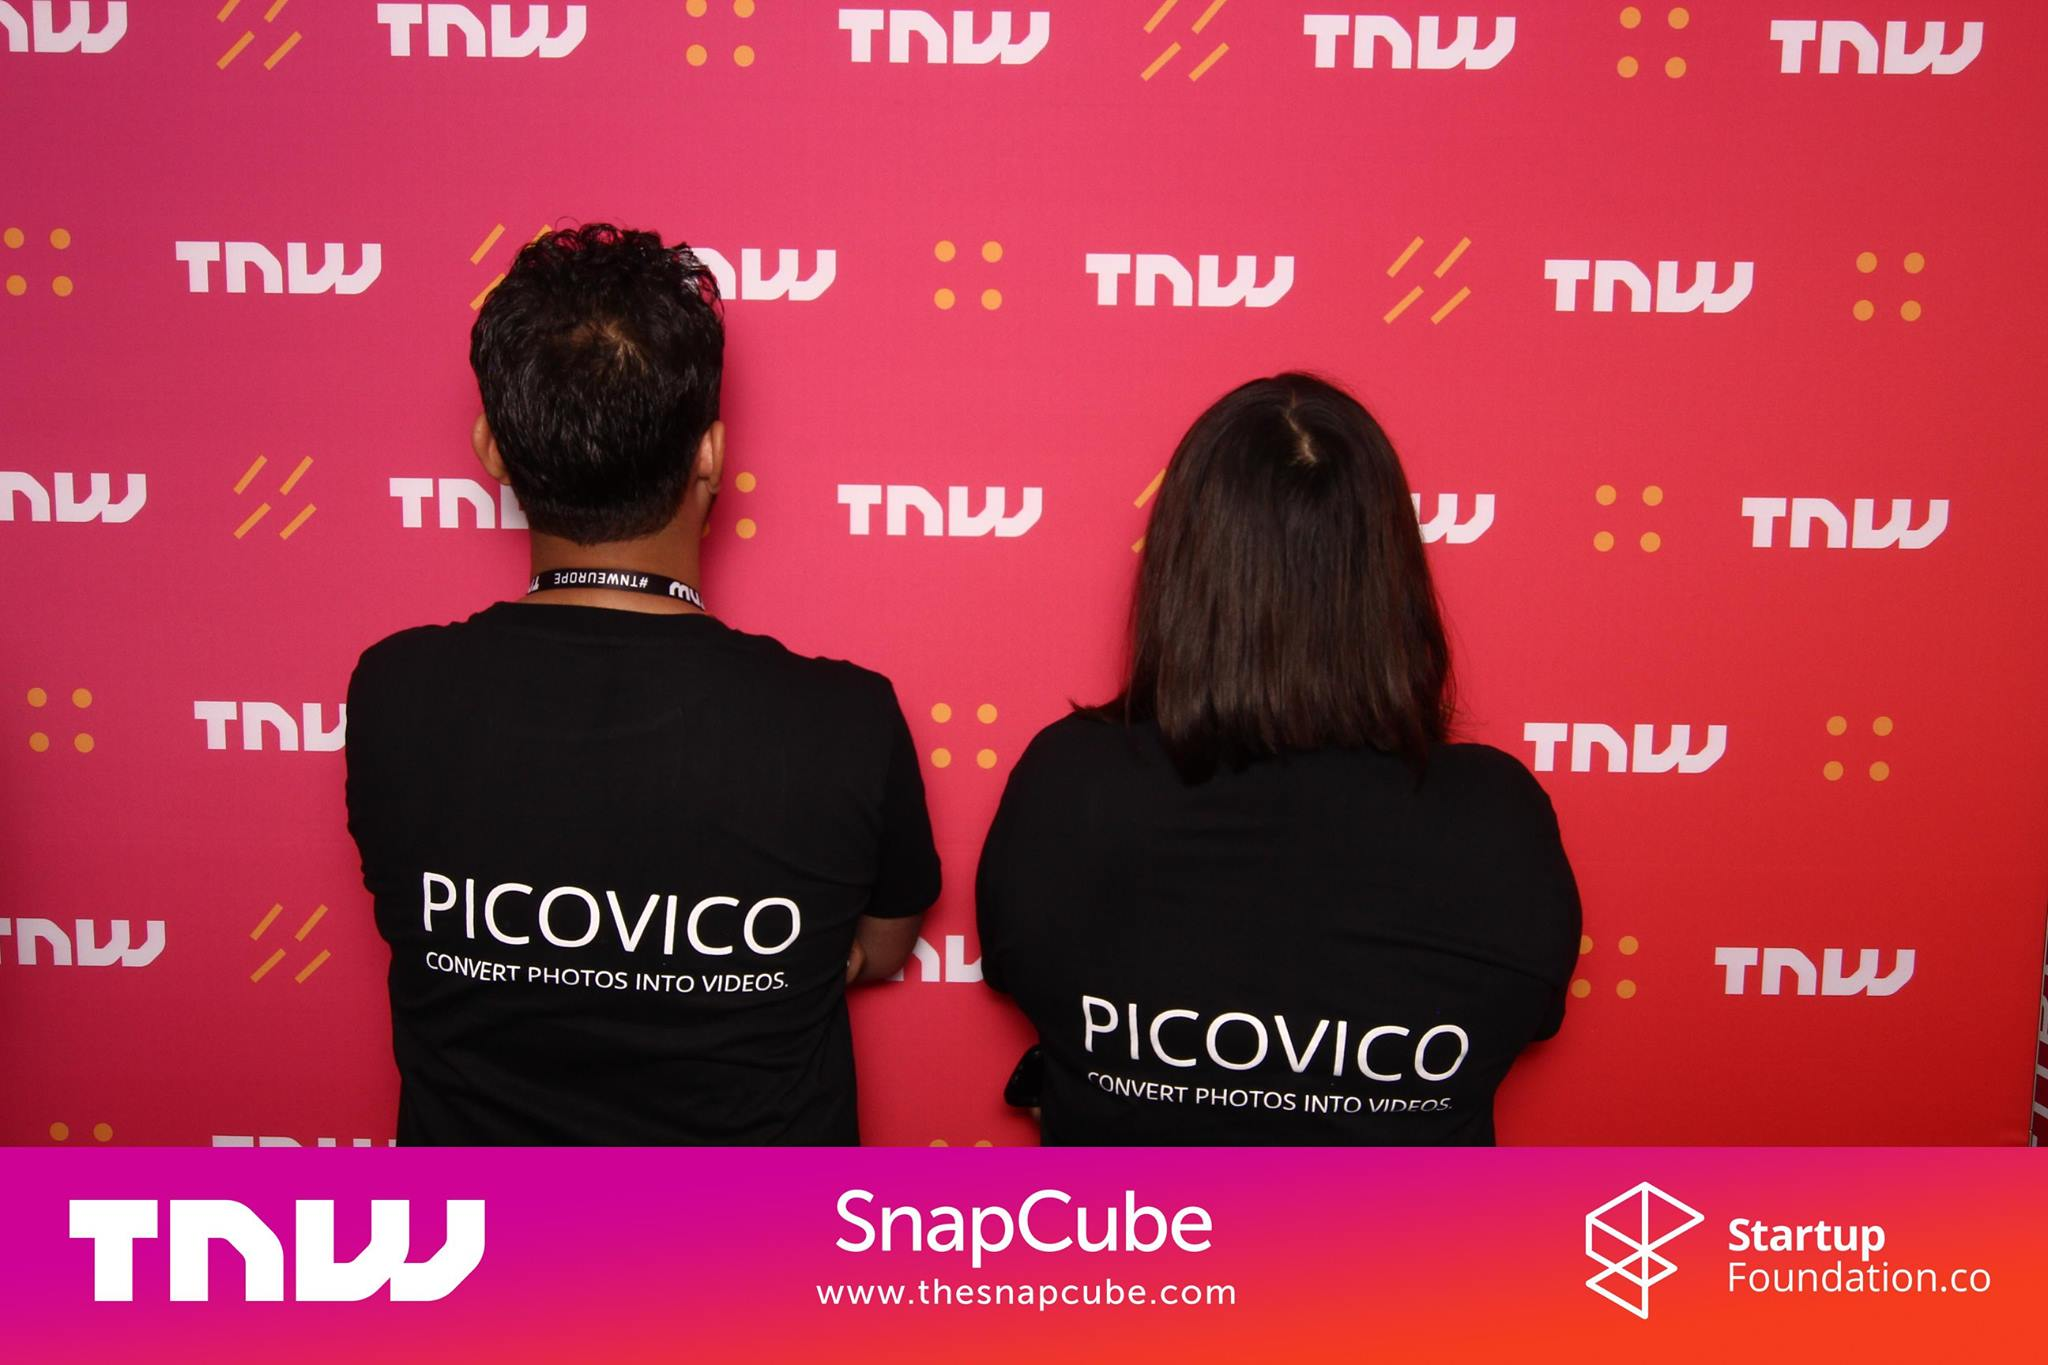 Picovico On TNW